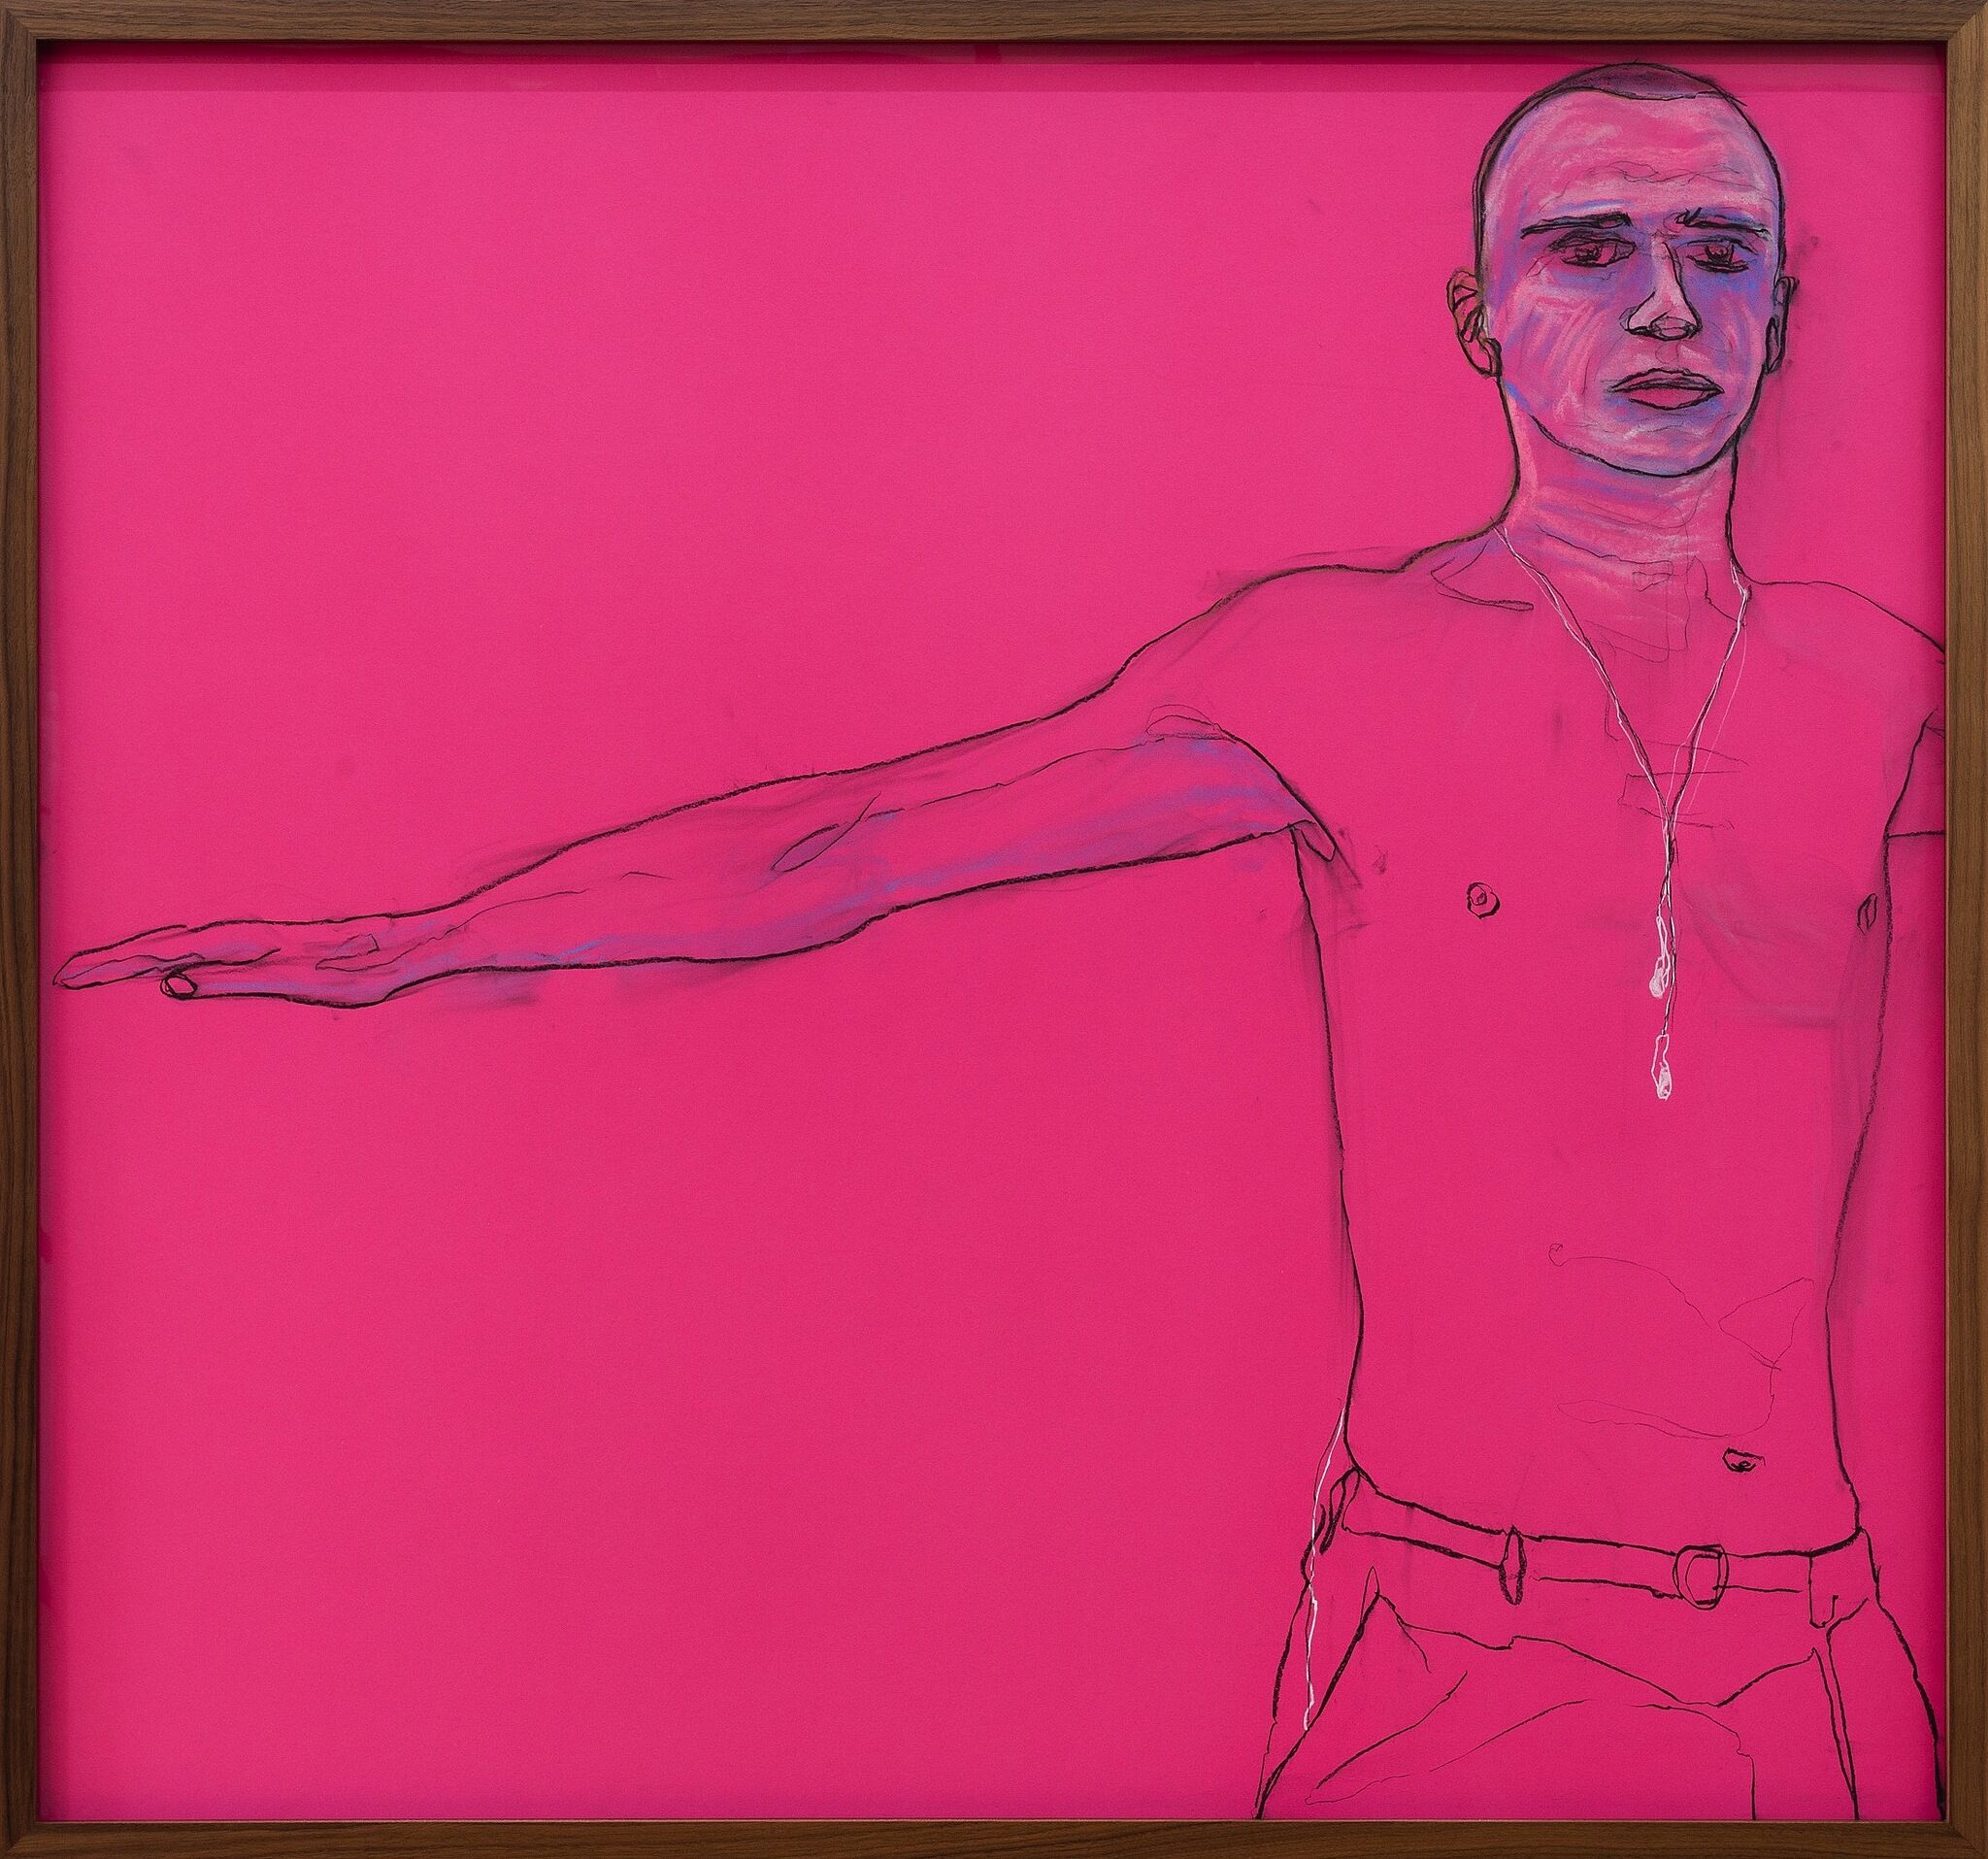 A pink drawing with the outline of a male figure holding one arm out to the side.